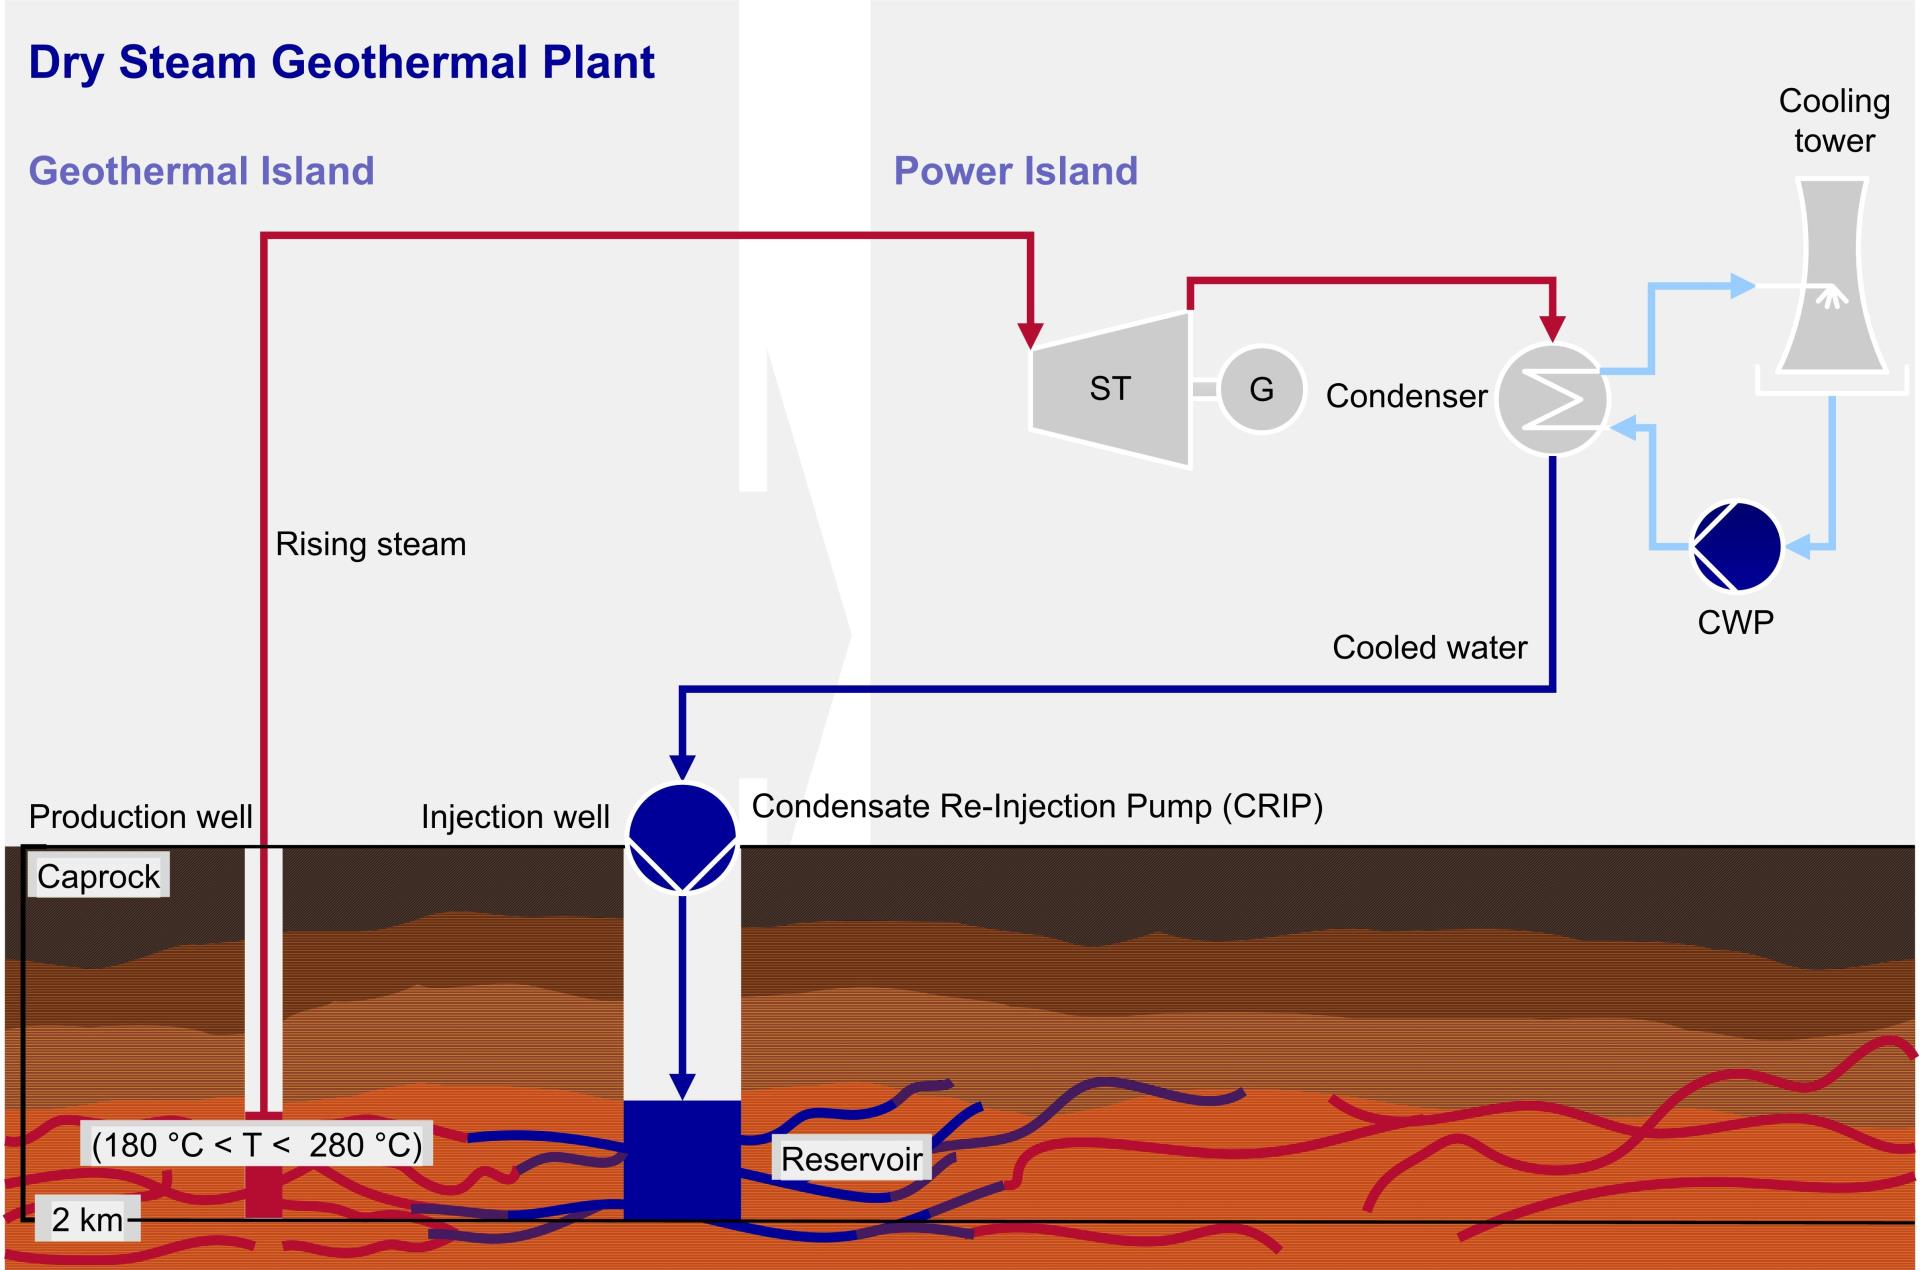 Dry Steam Geothermal Plant